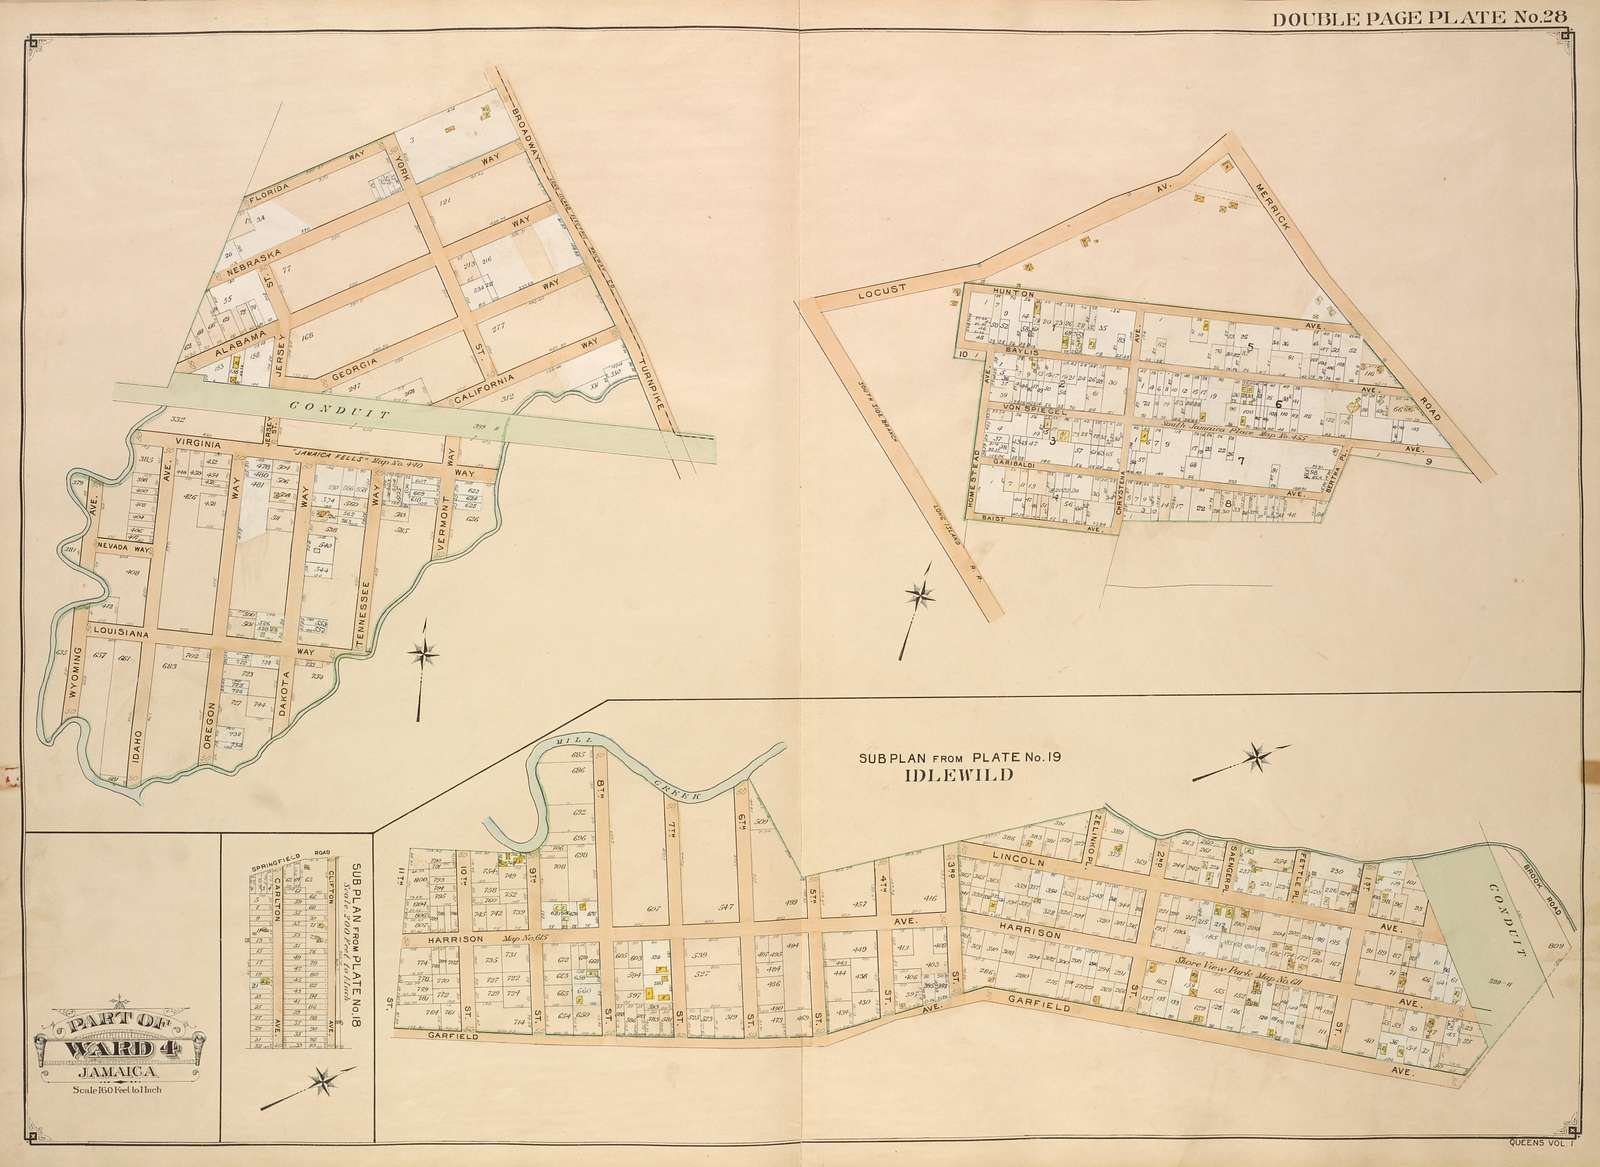 Queens, Vol. 1, Double Page Plate No. 28; Part of Ward 4; Jamaica; [Map bounded by Broadway Turnpike, Vermont Way, tennessee Way, Dakota Way, Oregon Way, Idaho Ave., Wyoming Ave., Virginia Way, Alabama Way, Nebraska Way, Florida Way; Including Locust Ave., Merrick Road, Bertha PL., Baist Ave., South Side Branch Long Island R.R., Homestead Ave., Hunton Ave., Bay LisAve., Von Spiecel Ave., Garibaldi Ave., Chrystena Ave.]; Sub Plan From Plate No. 19; Idlewild; [Map bounded by Mill Creek, Brook Road; Including Garfield Ave., 11th St.]; Sub Plan From Plate No. 18; [Map bounded by Springfield Road; Including Clifton Ave., Carlton Ave.]